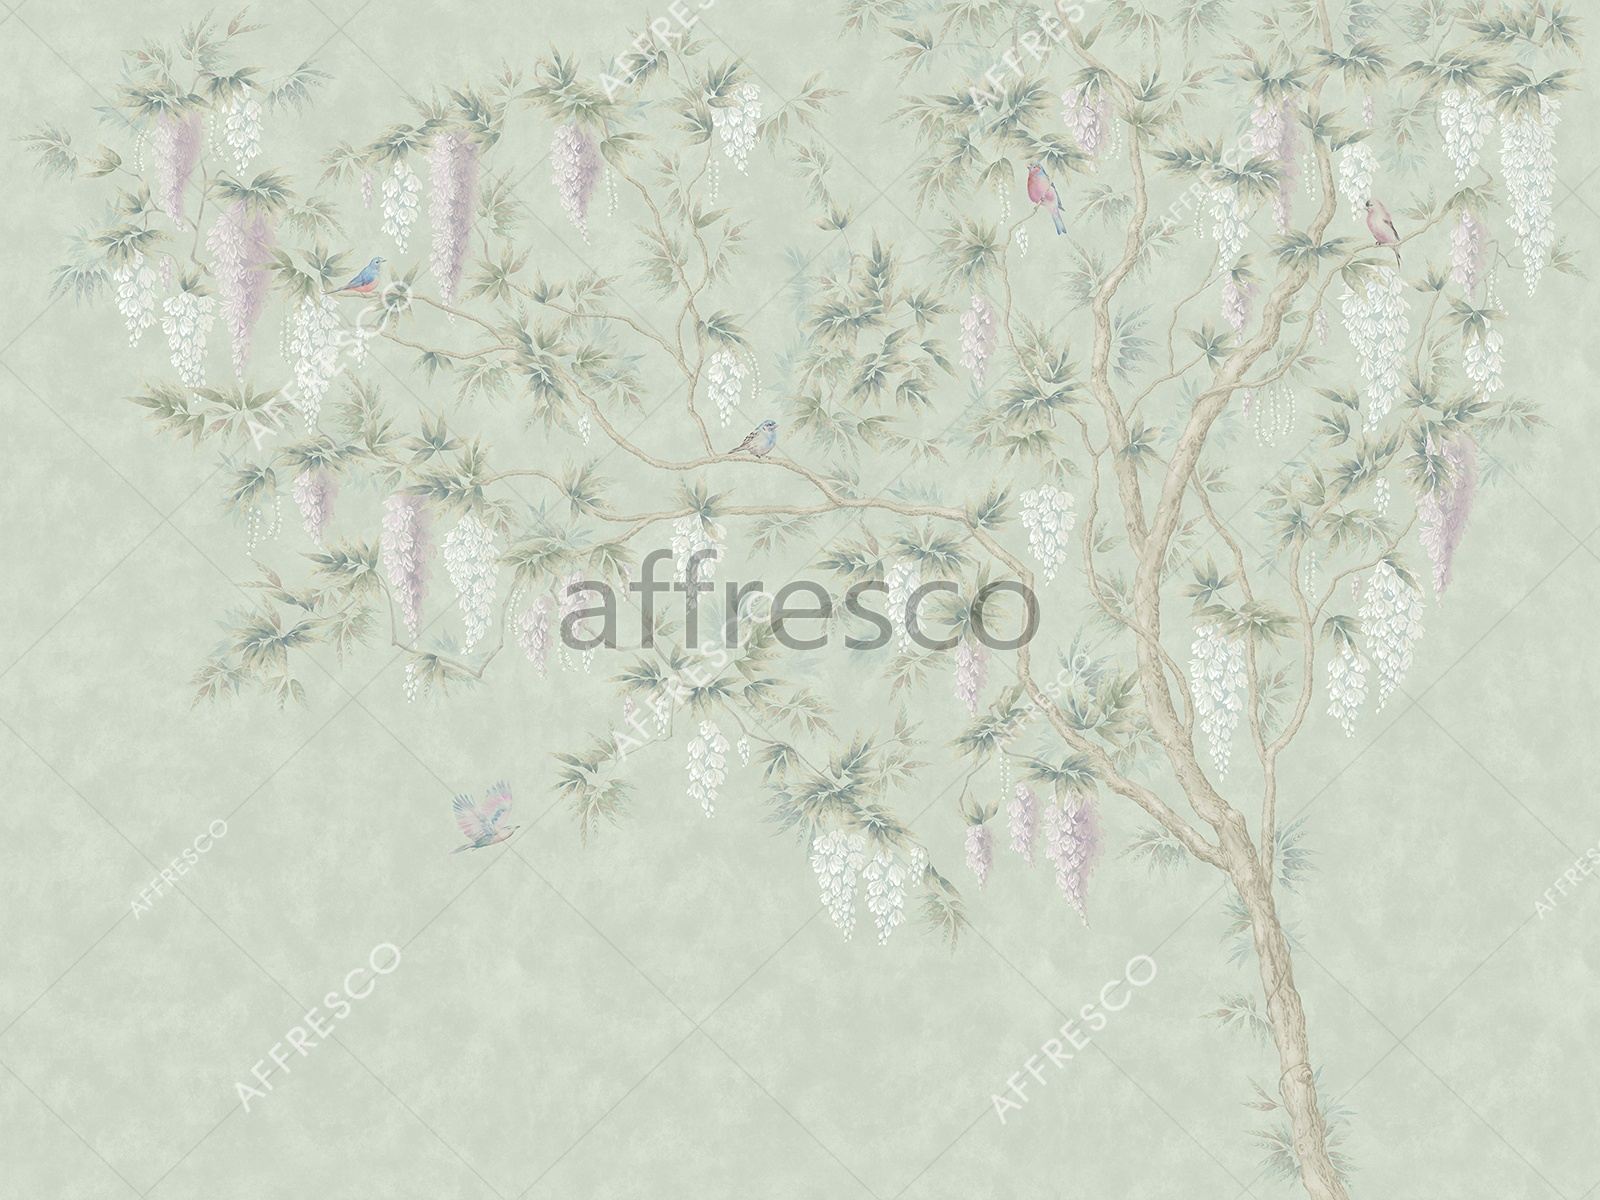 AF515-COL1 | Atmosphere | Affresco Factory